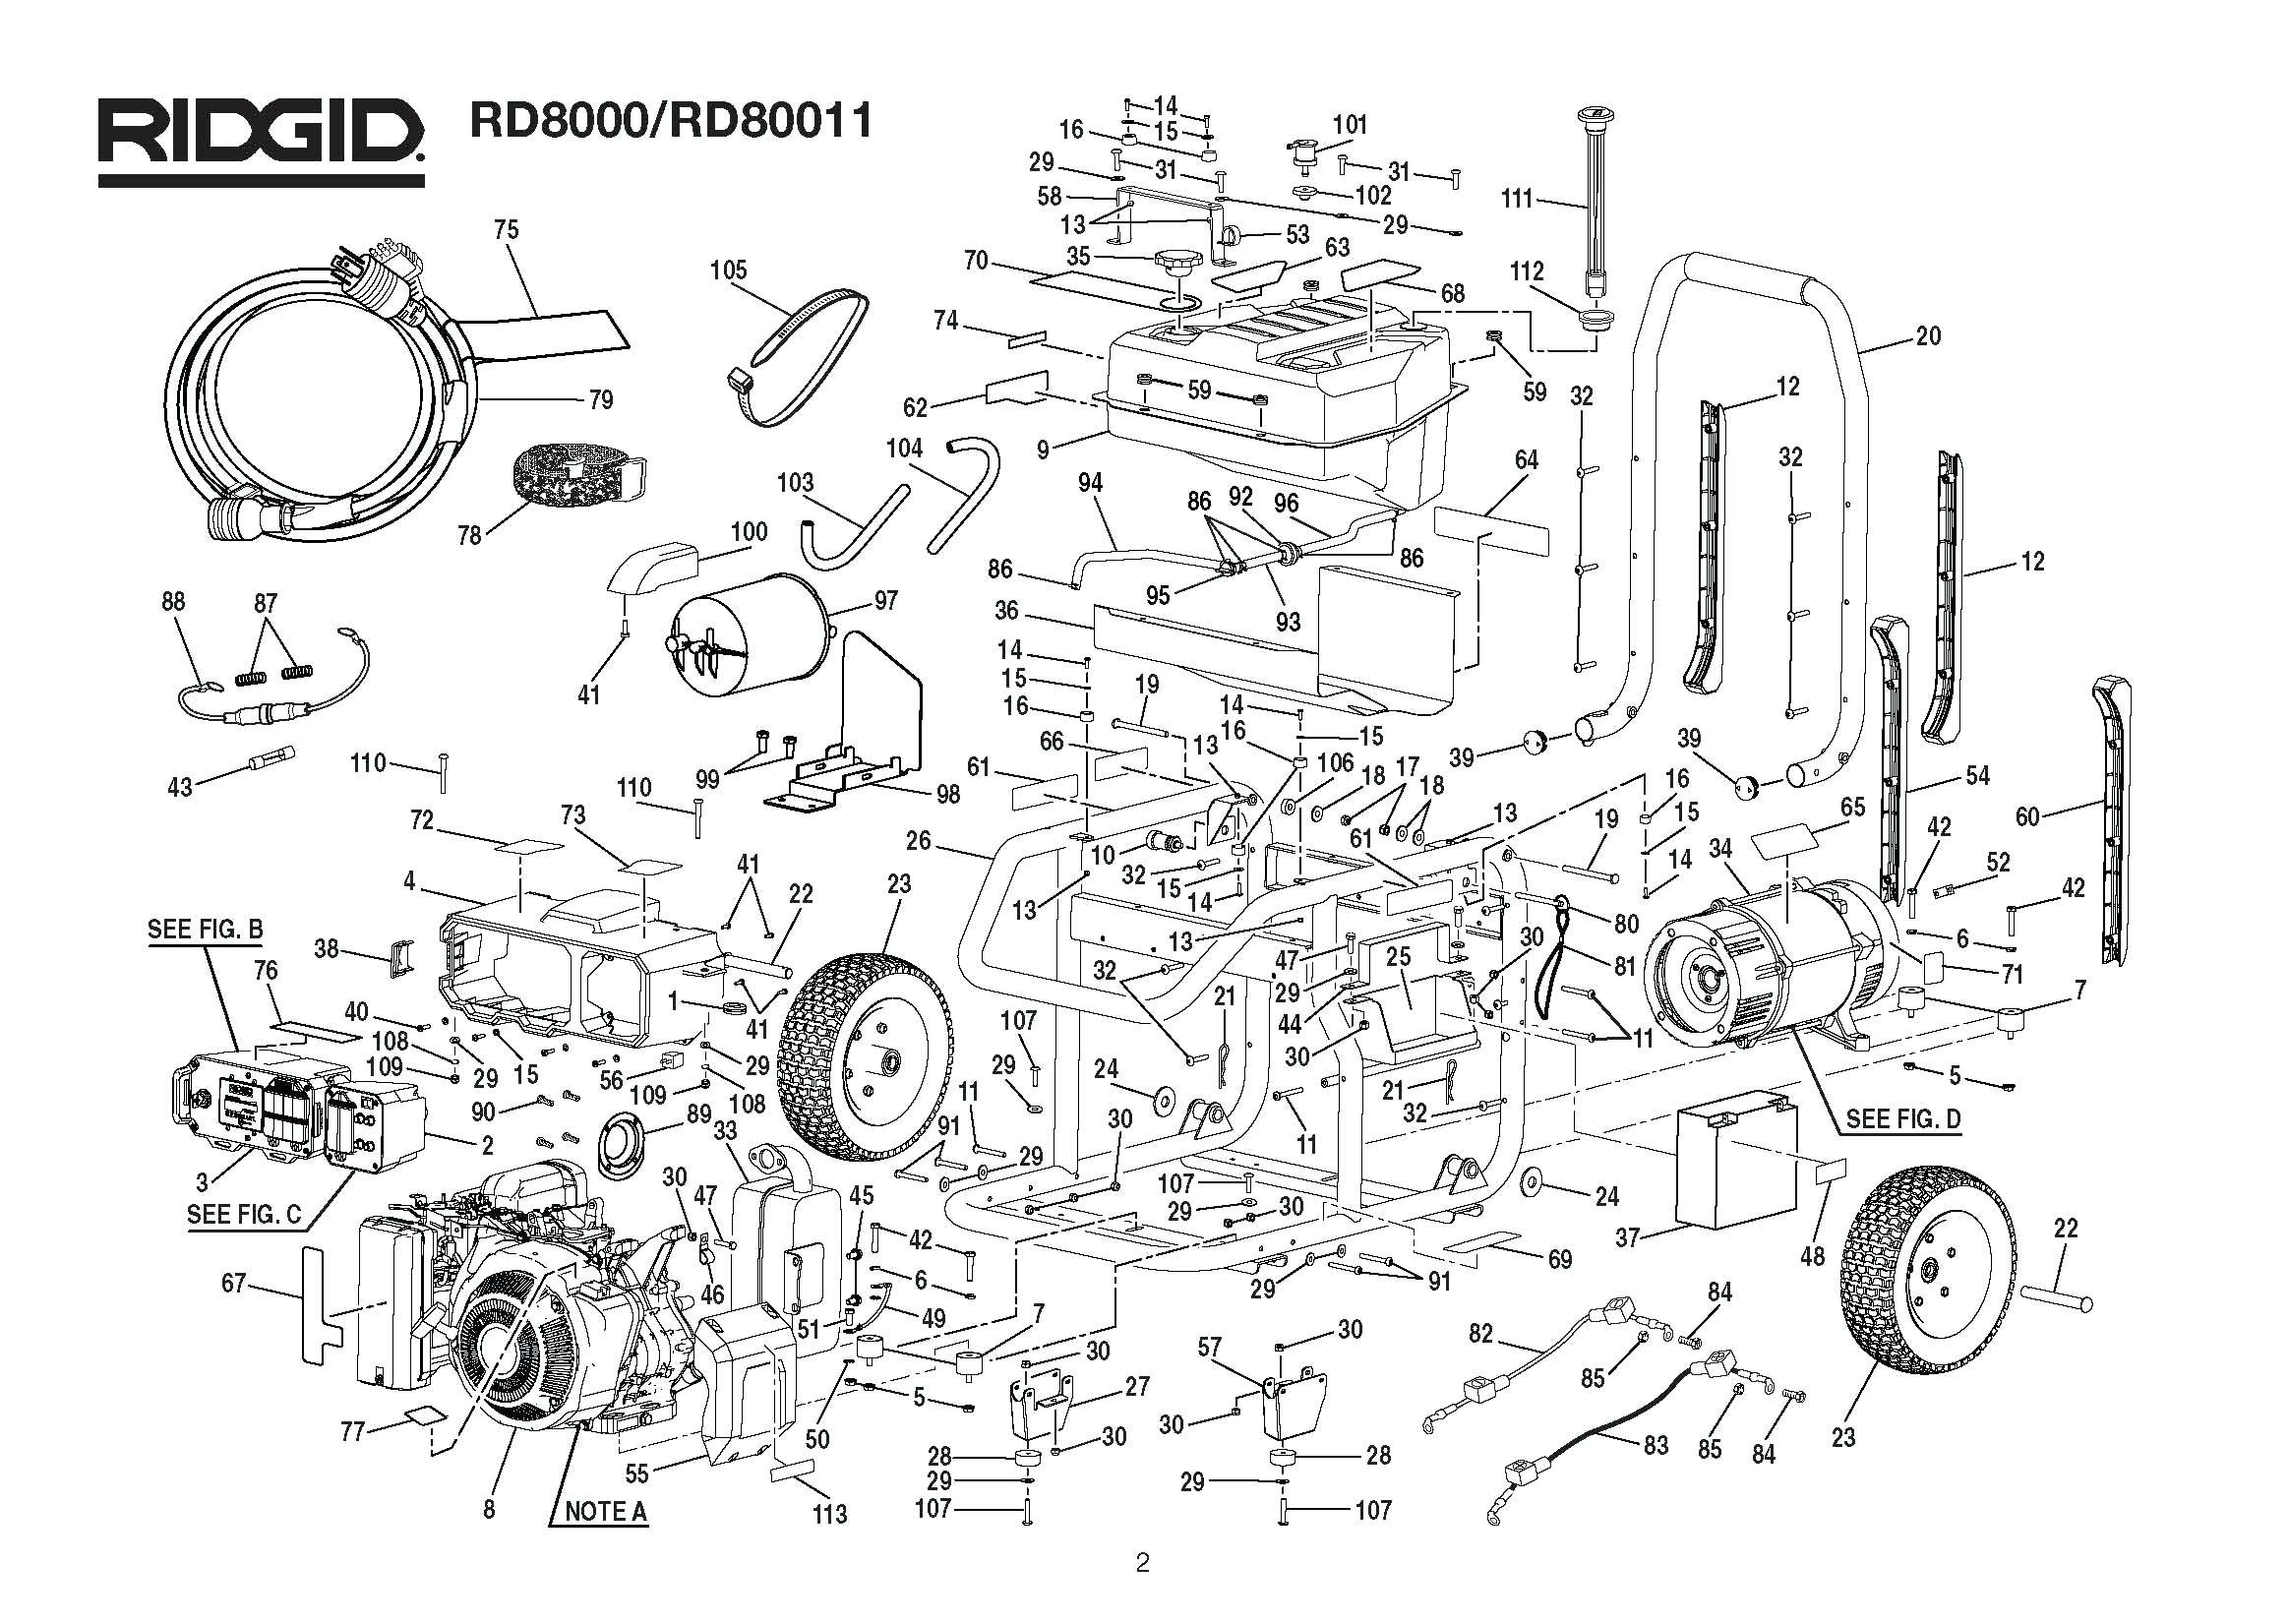 Vw Engine Parts Diagram Kawasaki Diagrams Fh680v Service Manual Repair B P